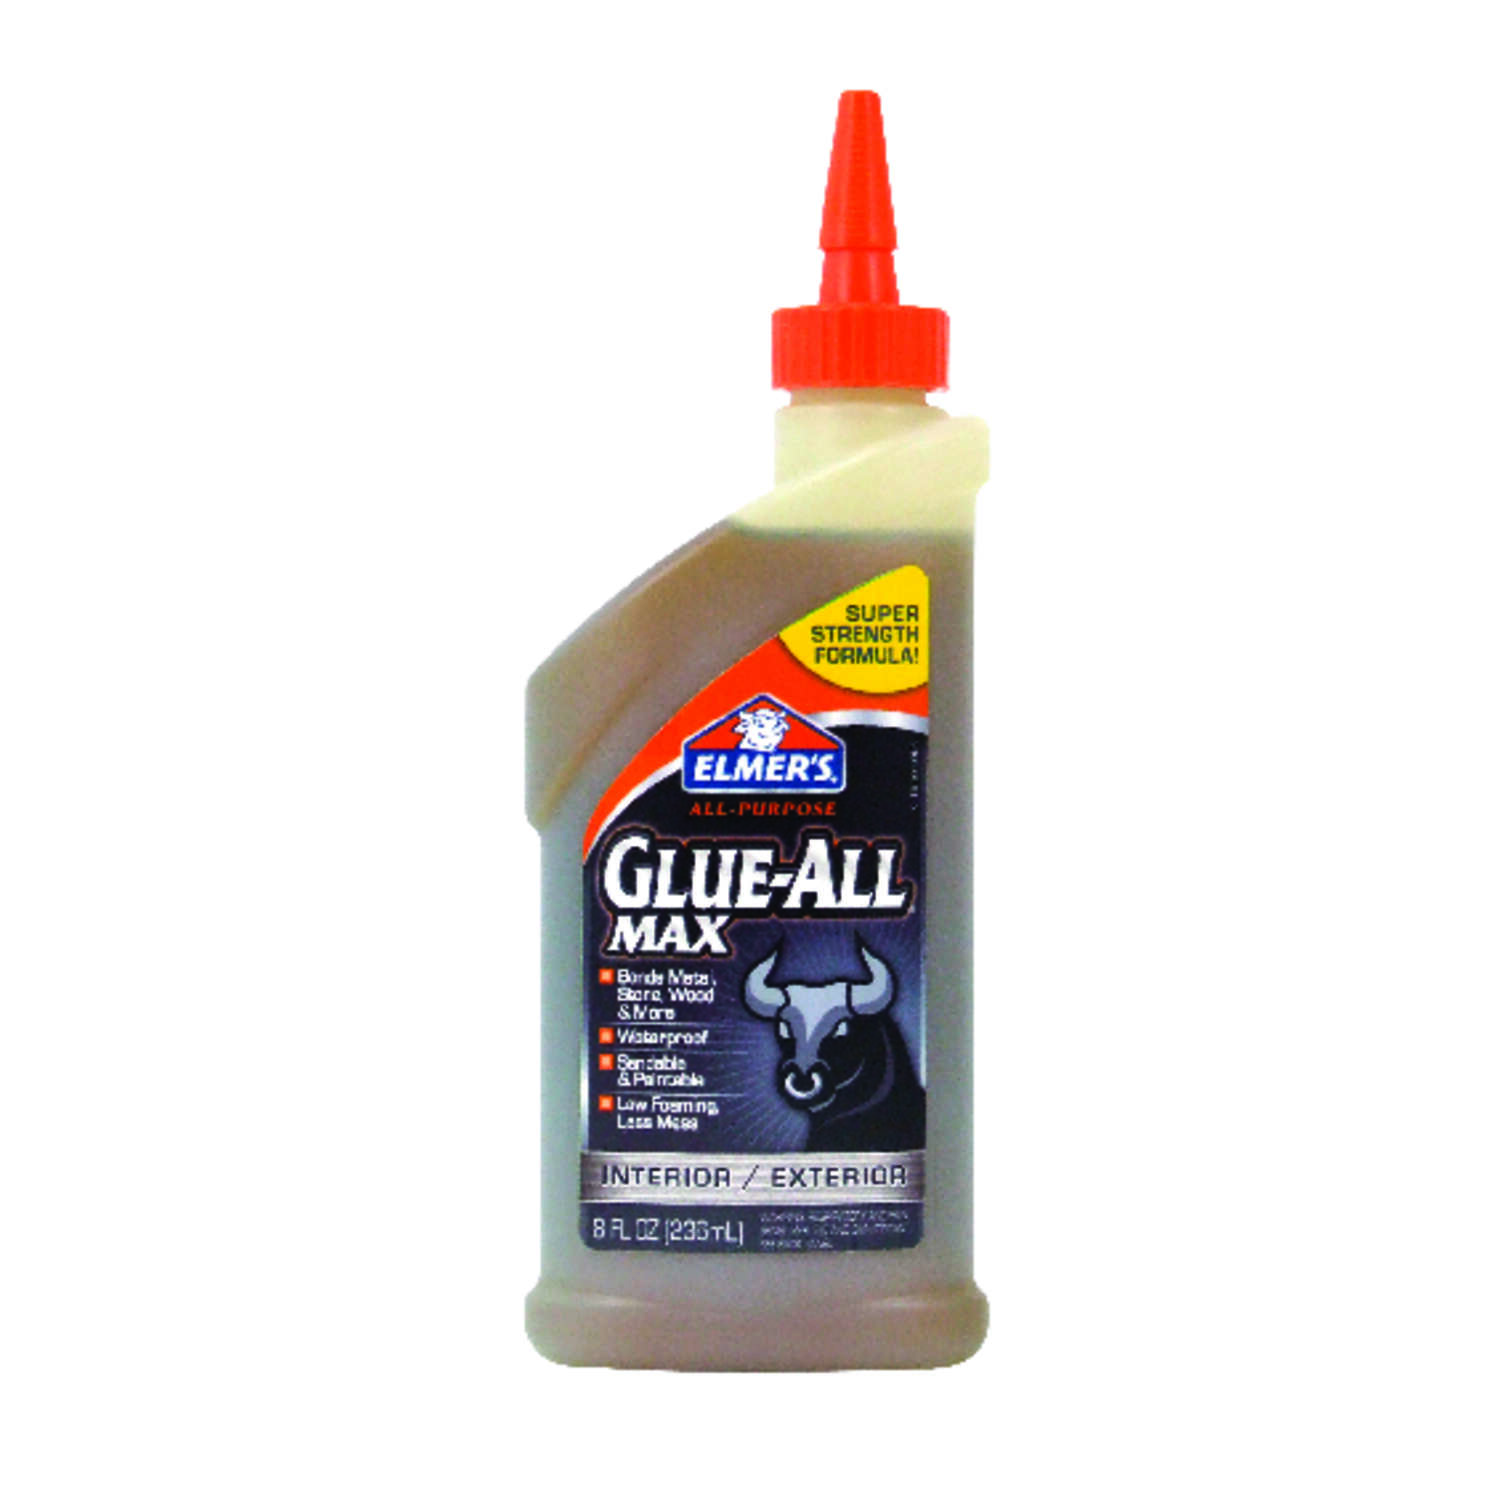 Elmer's  Glue-All  Super Strength  Polyvinyl acetate homopolymer  Glue  8 oz.